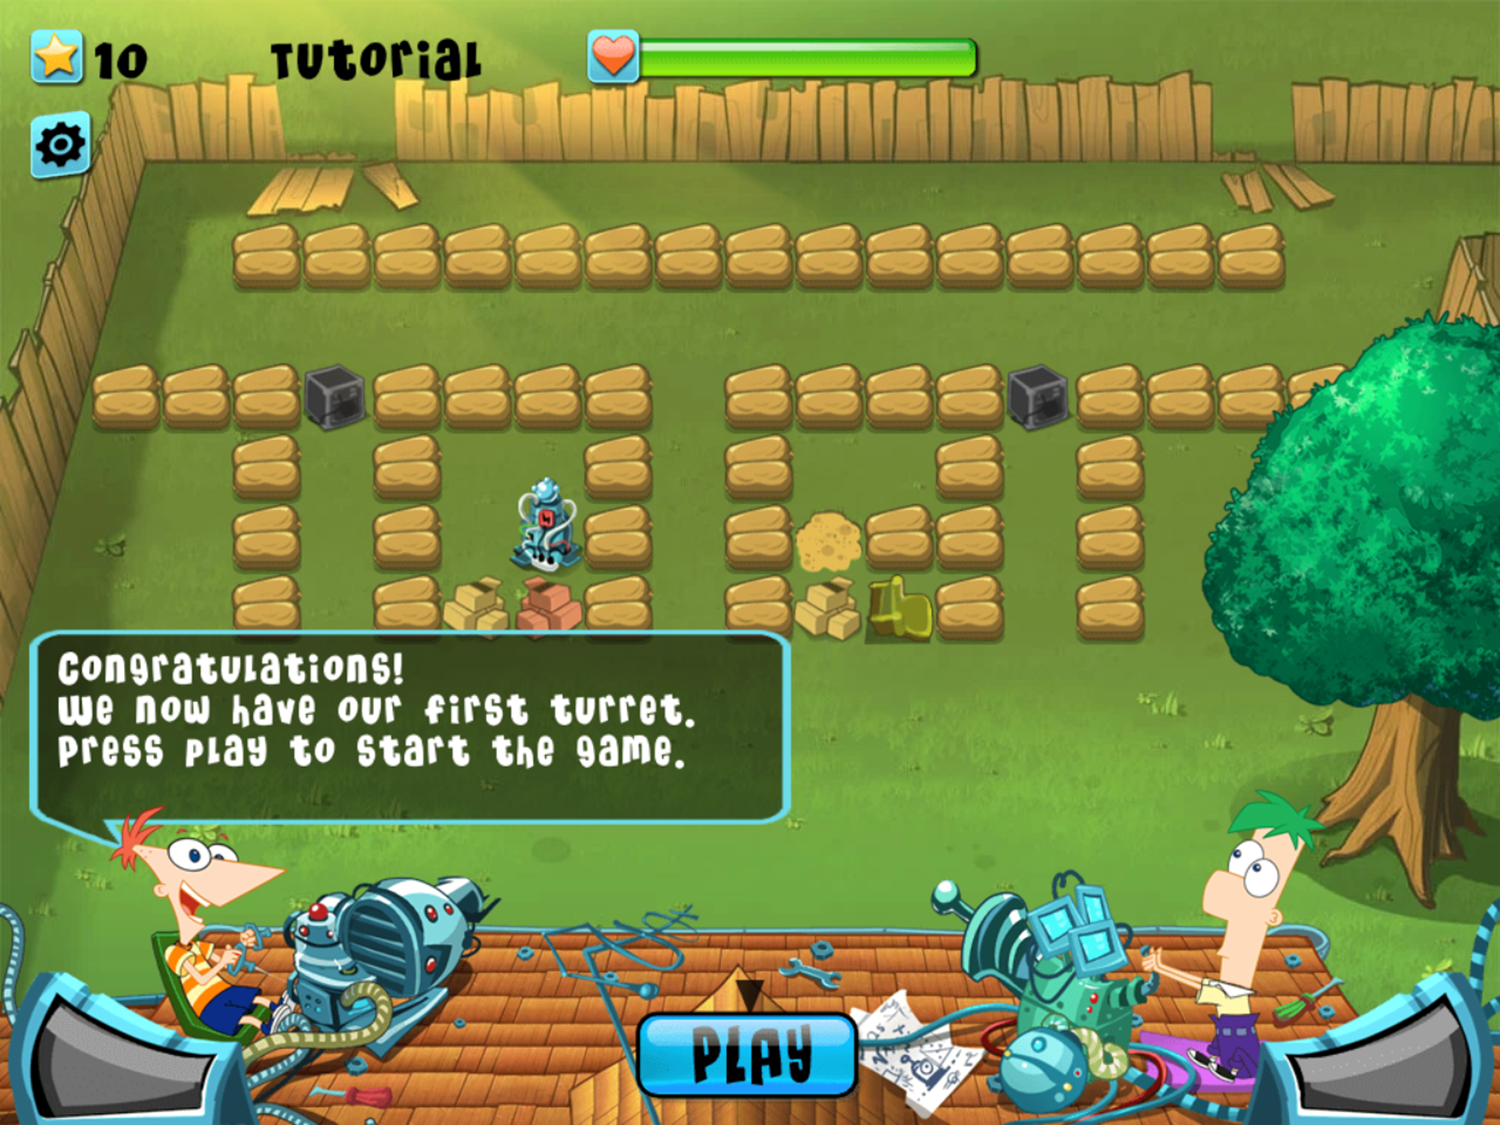 Phineas and Ferb Backyard Defense Game Play Tips Screenshot.